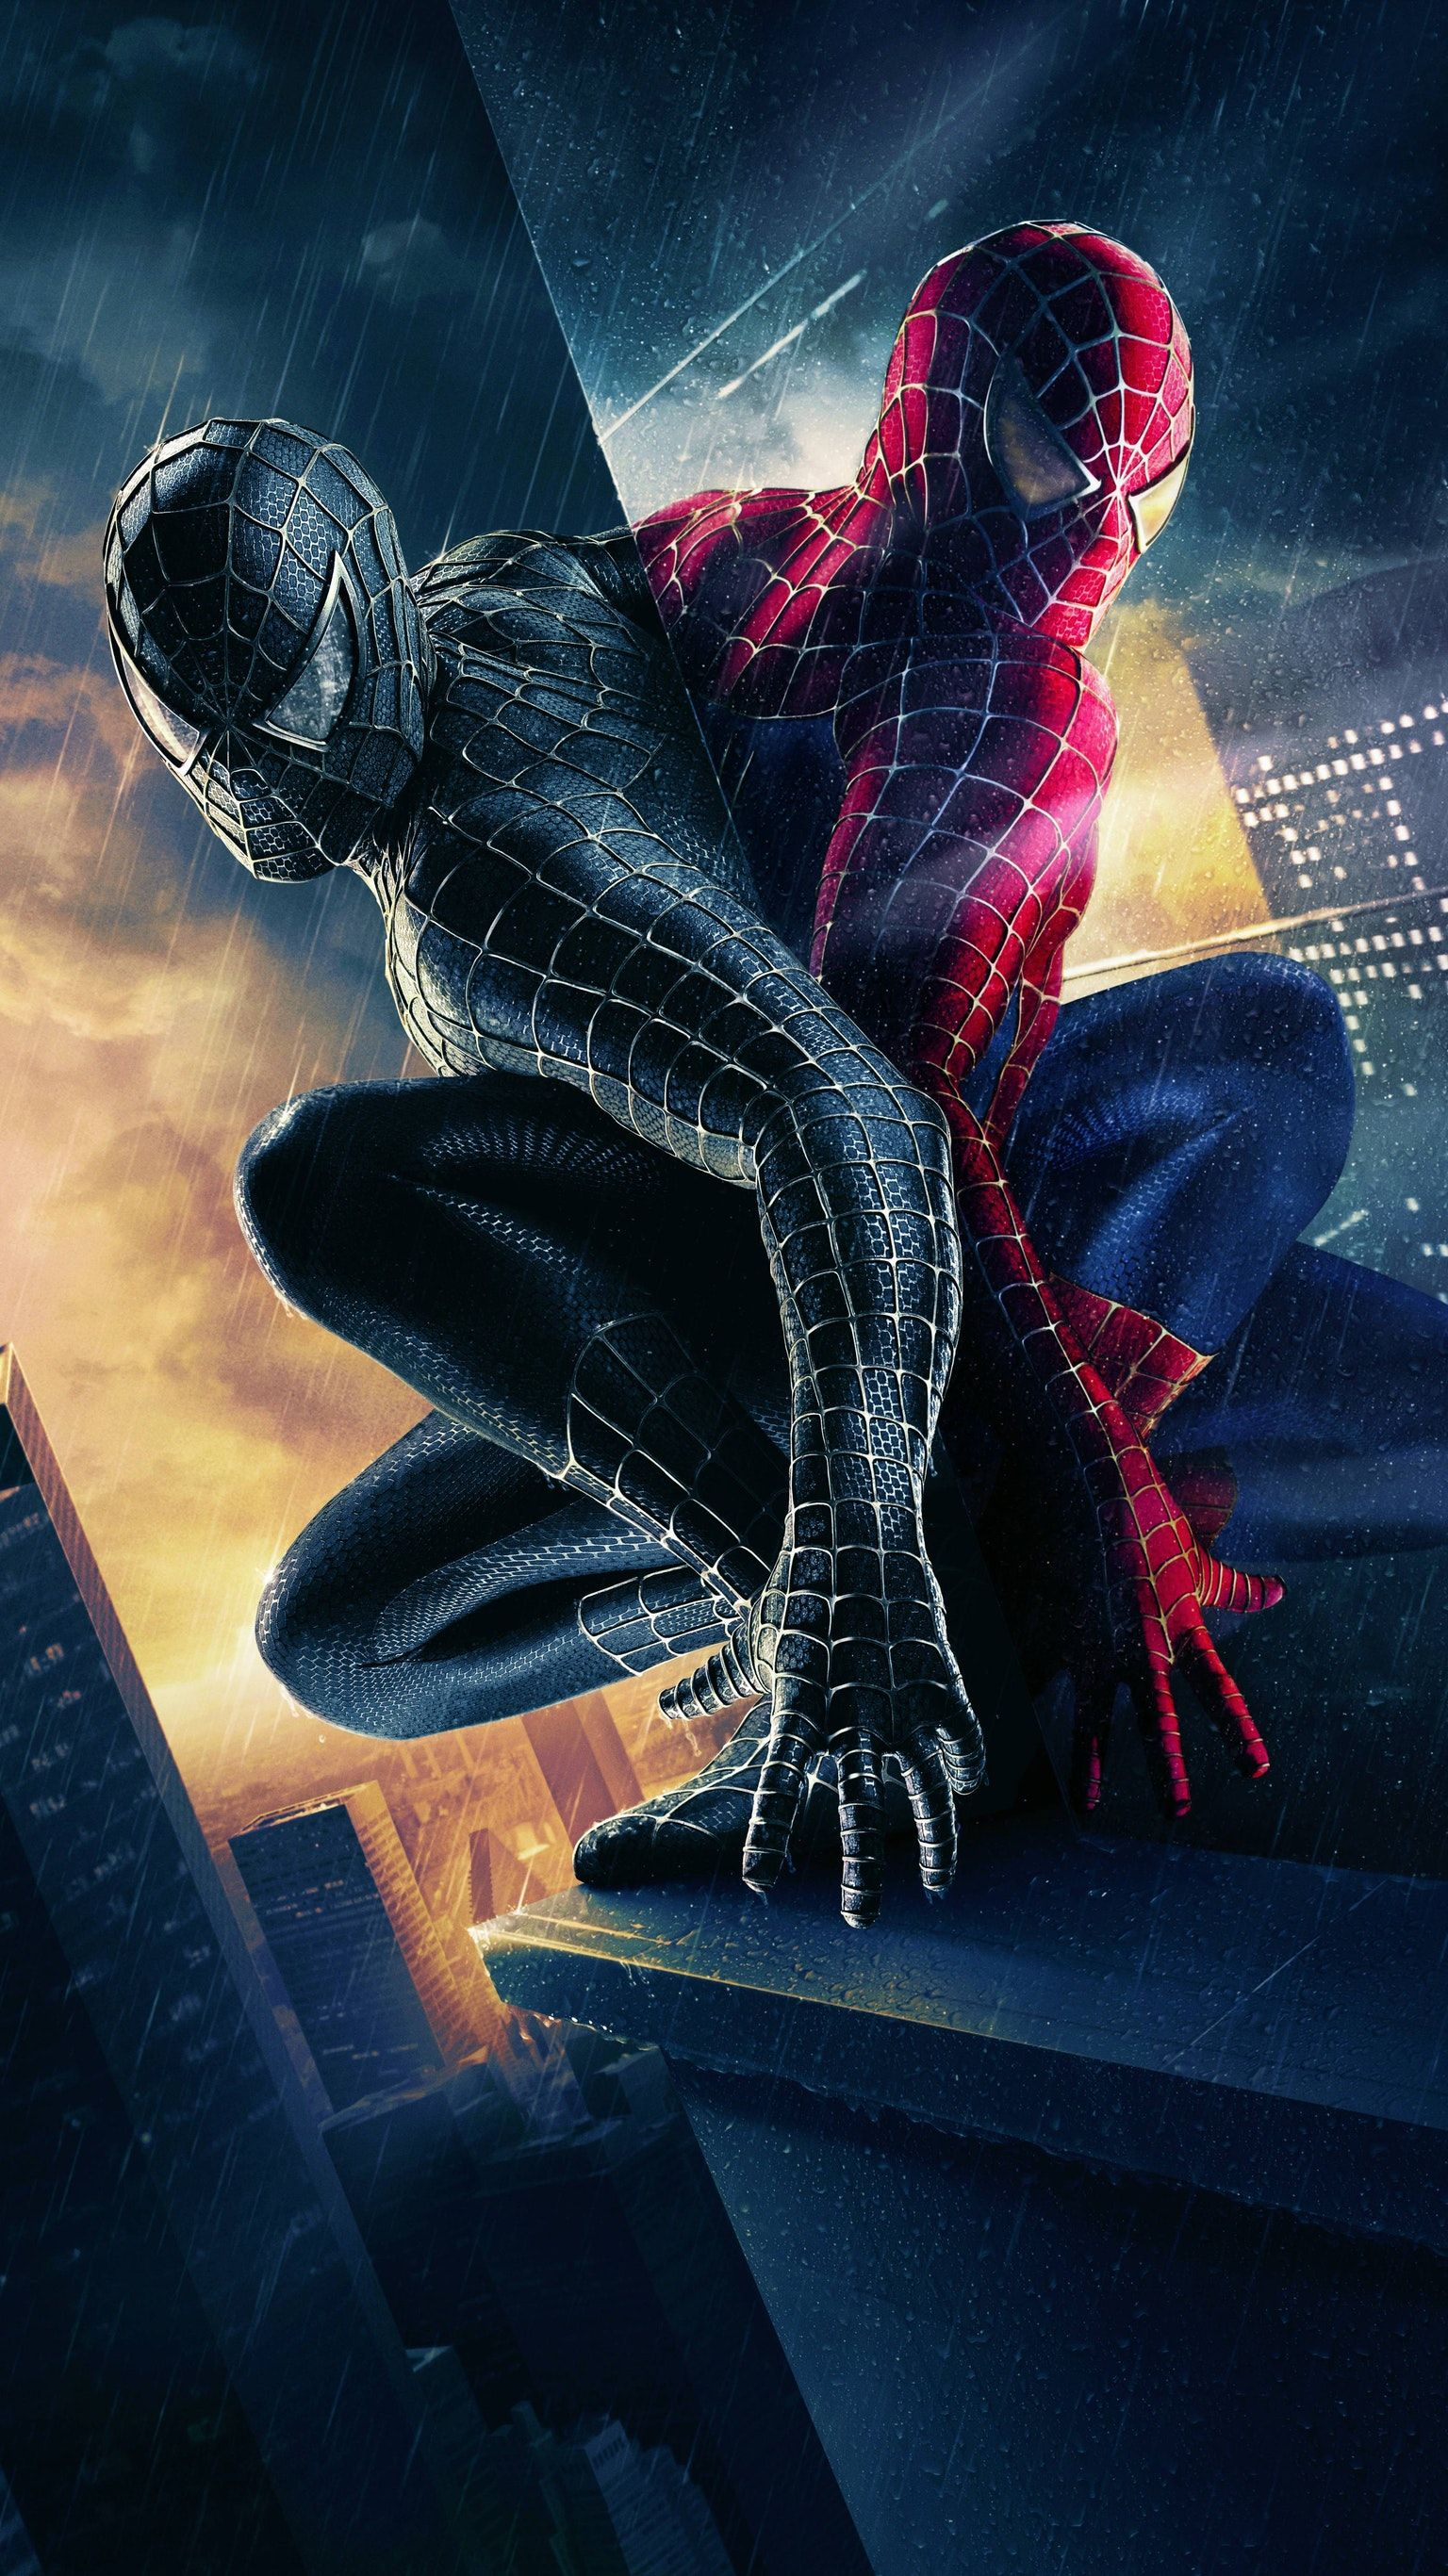 Spiderman3 Dark 640 X 1136 Wallpapers Available For Free Download With Images Spiderman Marvel Spiderman Black Spiderman